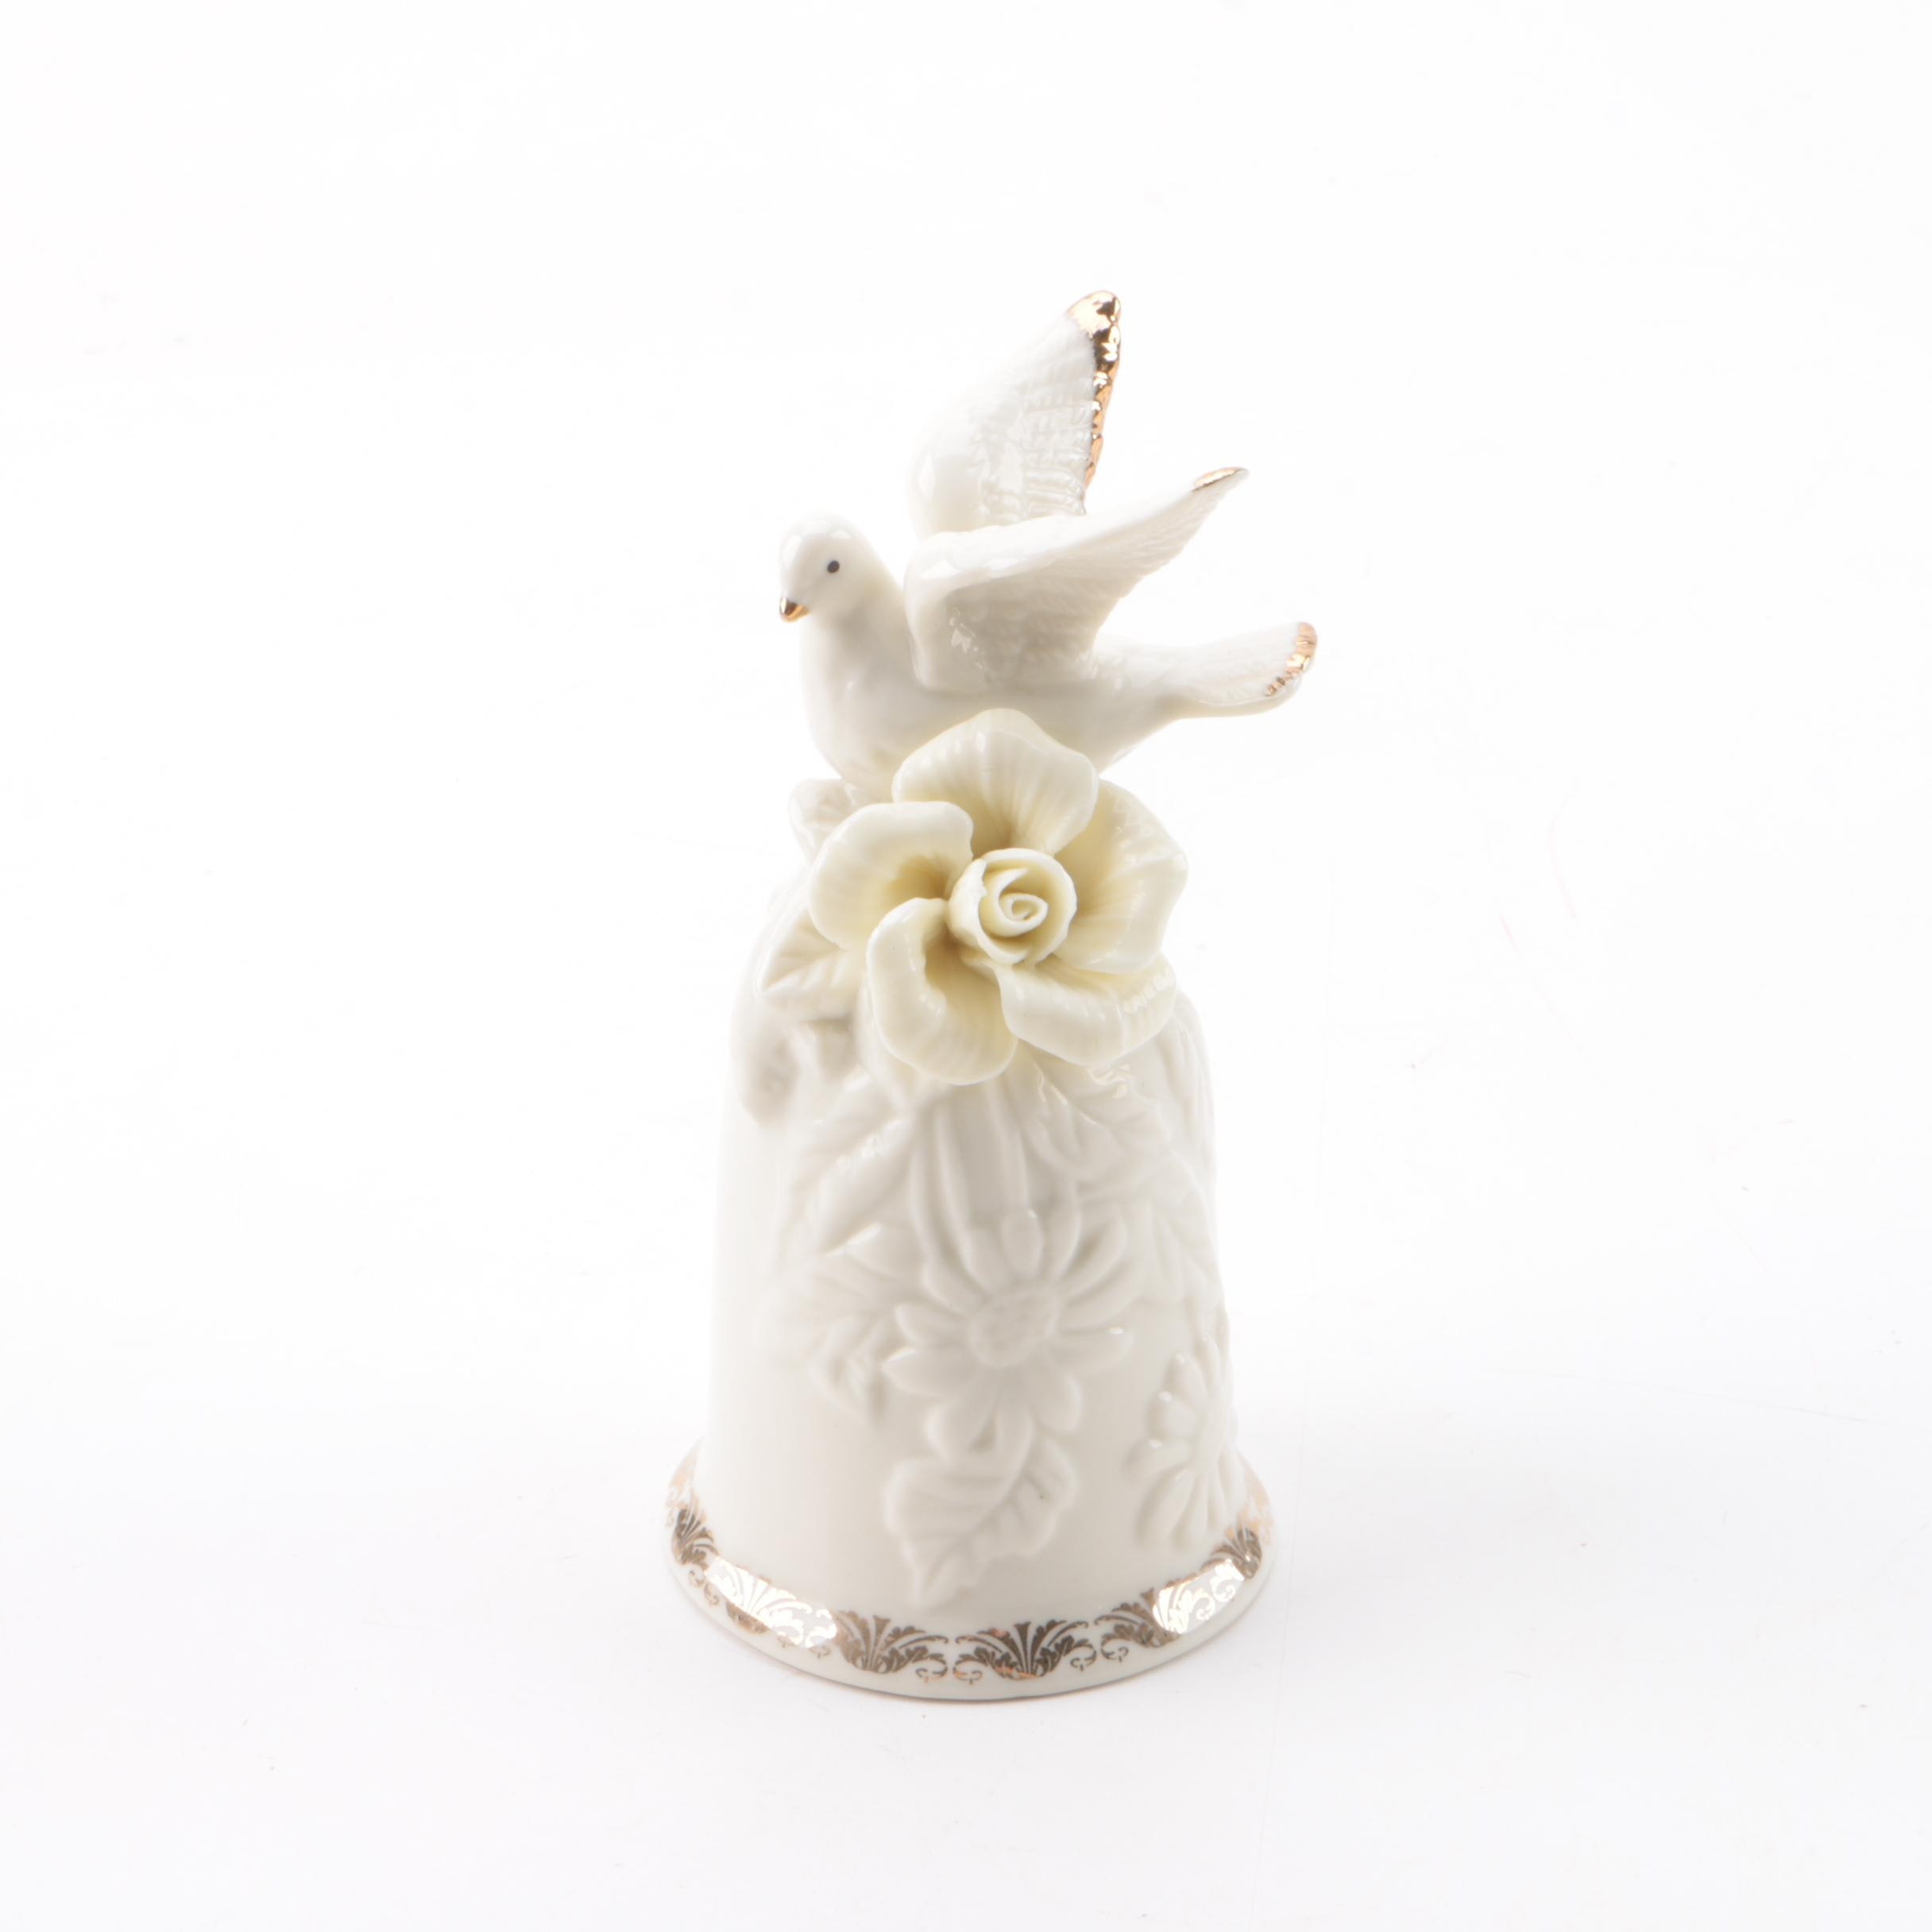 Porcelain Bell with Dove Figurine and Gilt Accents